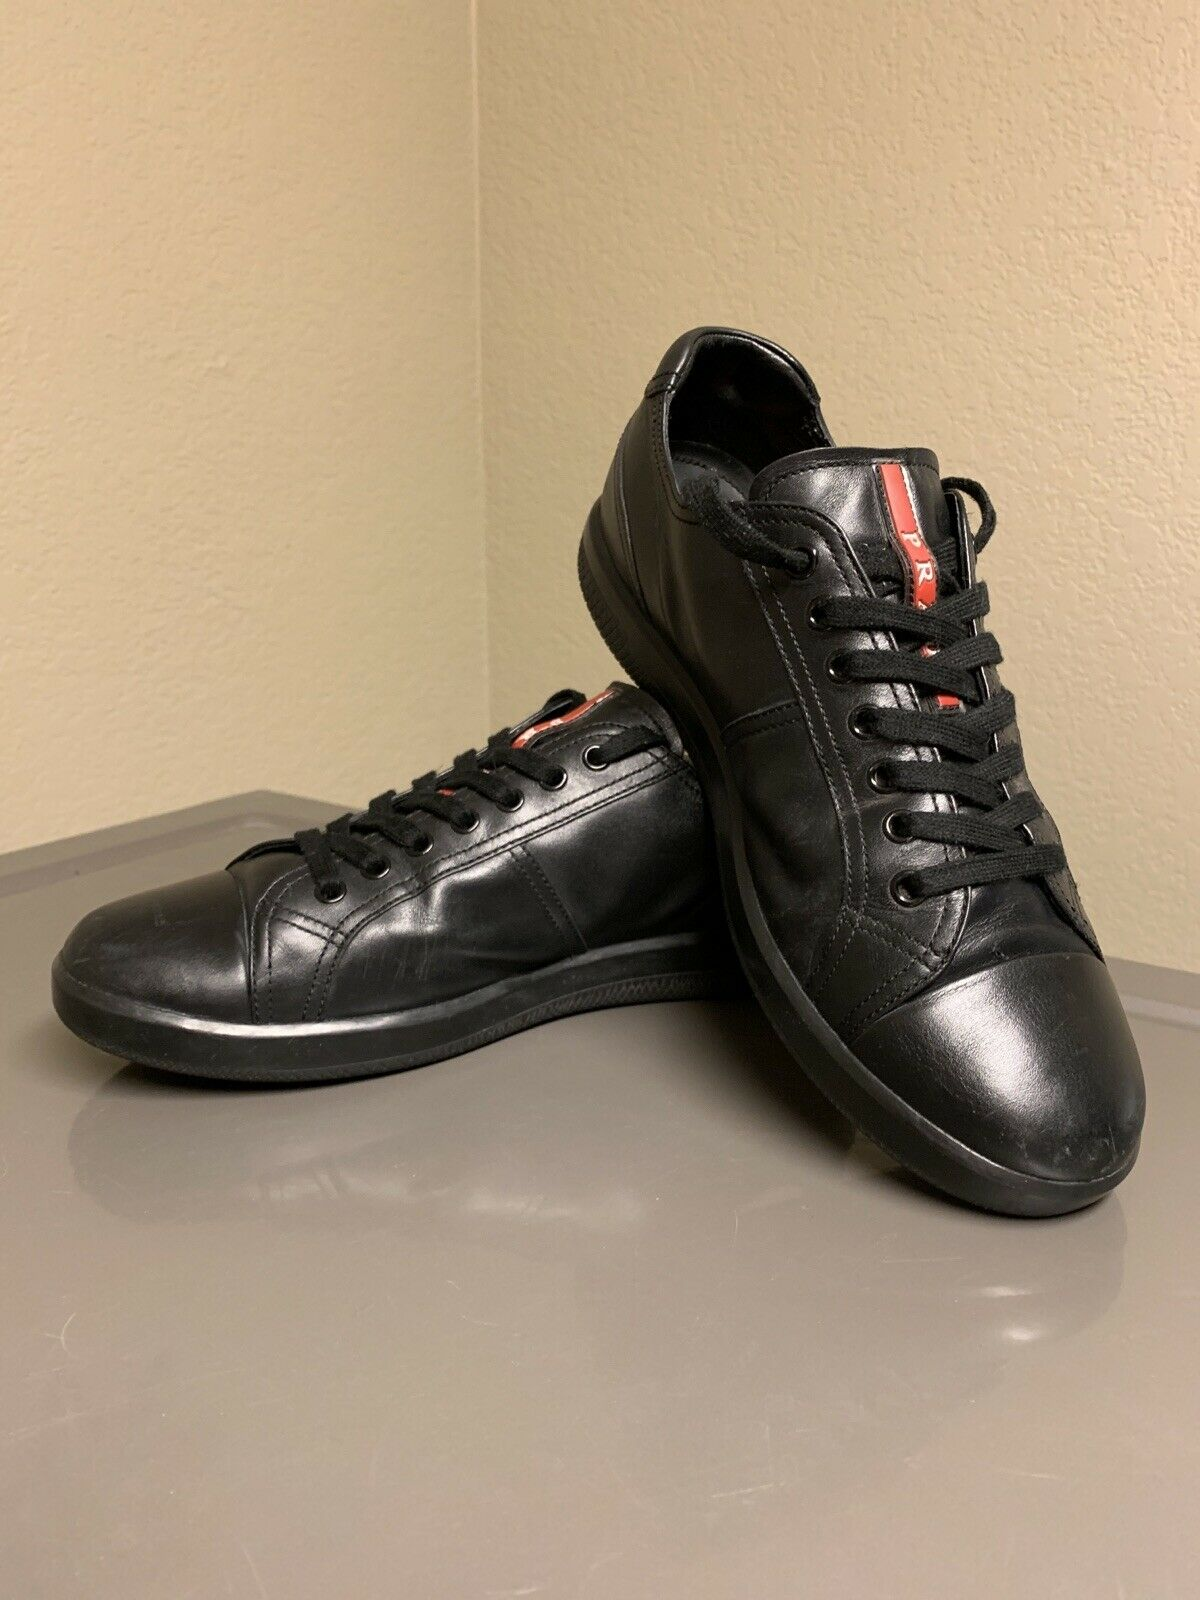 pre owned luxury shoes